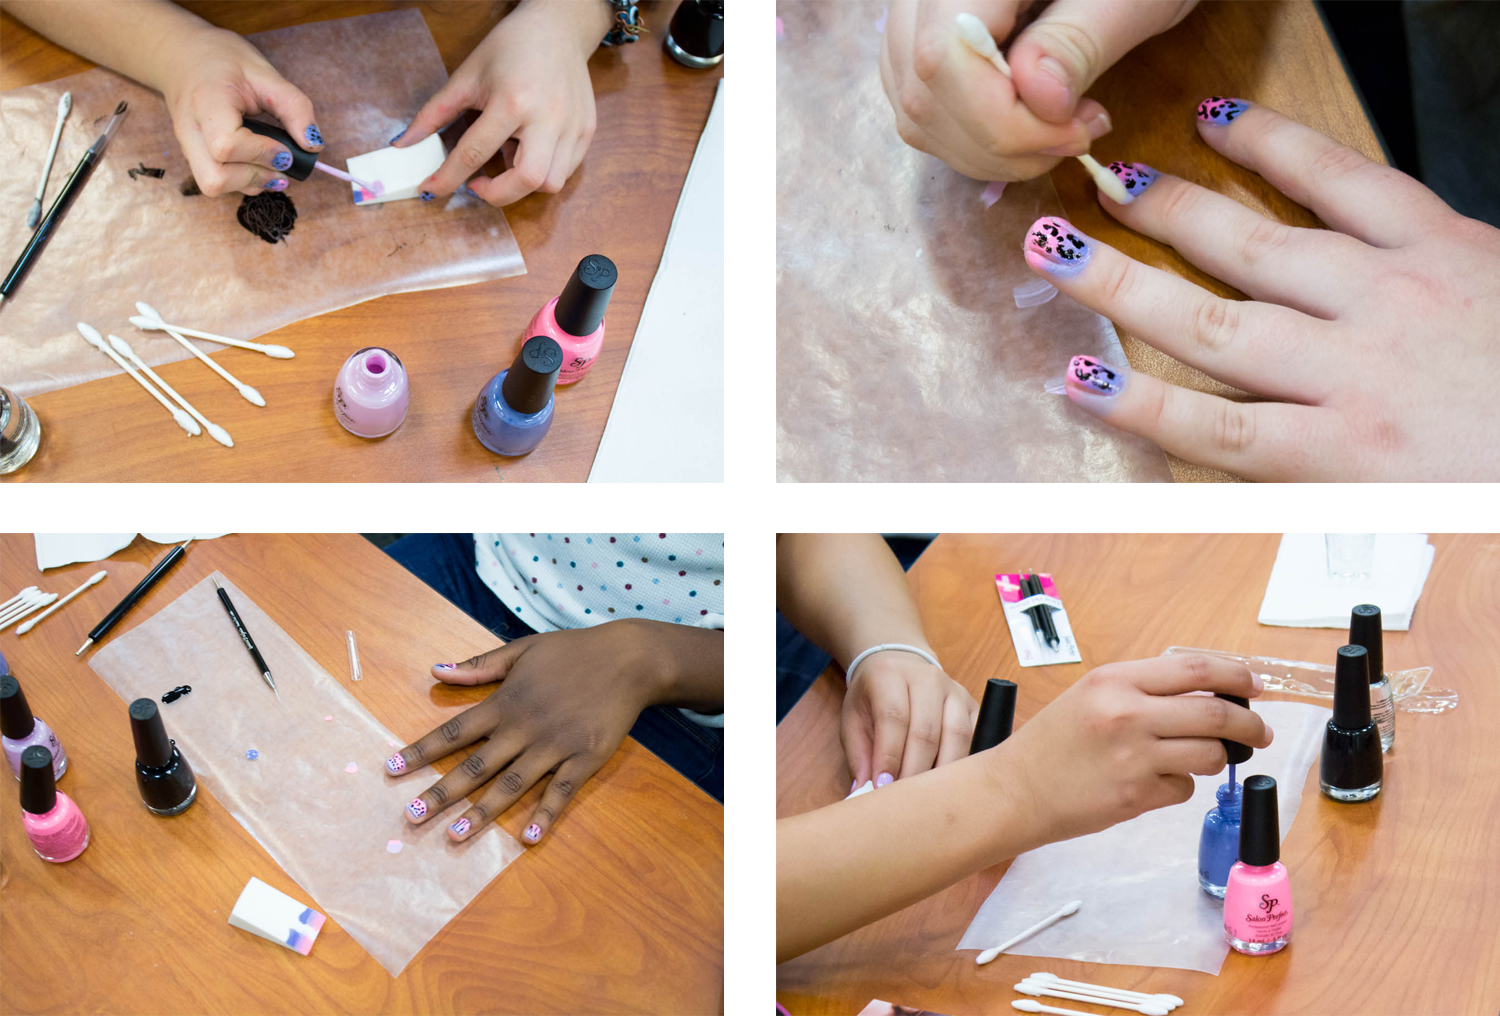 Beginner nail art workshop by @chalkboardnails